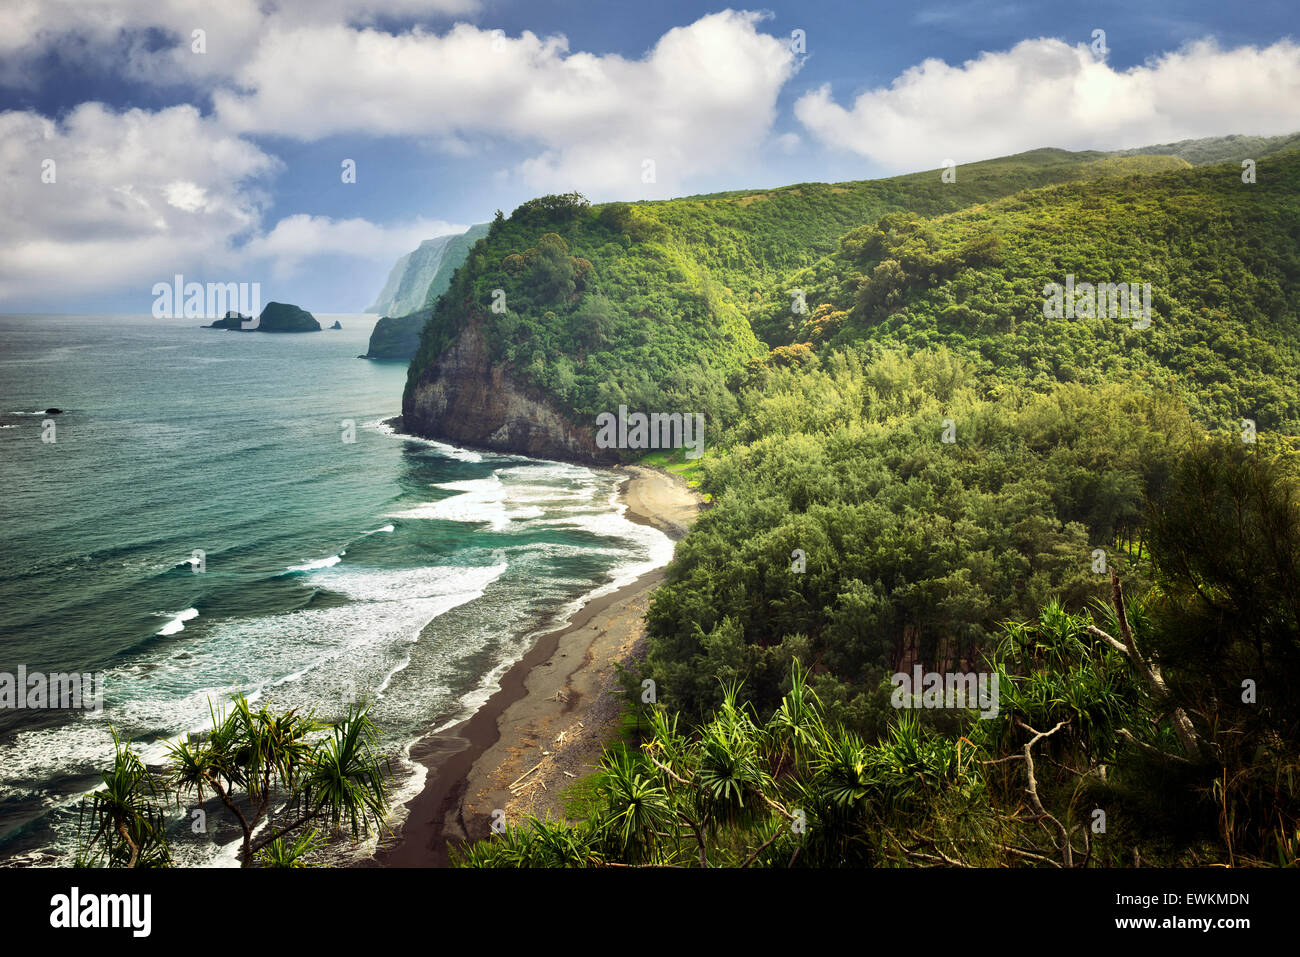 Coastline at Pololu Valley. Hawaii, The Big Island. - Stock Image